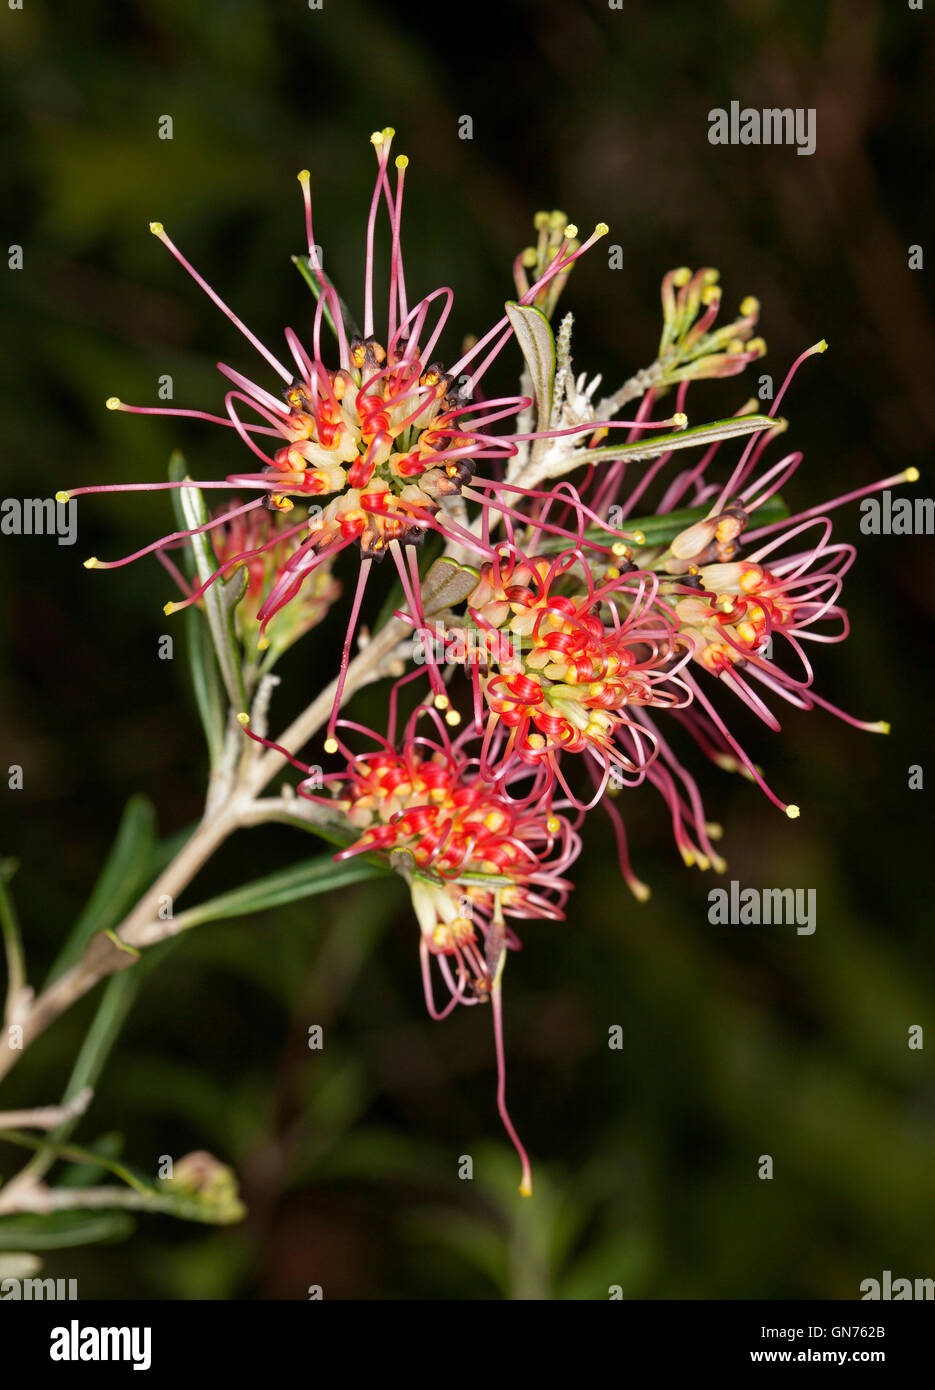 Cluster of stunning vivid red yellow flowers of grevillea red cluster of stunning vivid red yellow flowers of grevillea red sunset australian native plant on dark background mightylinksfo